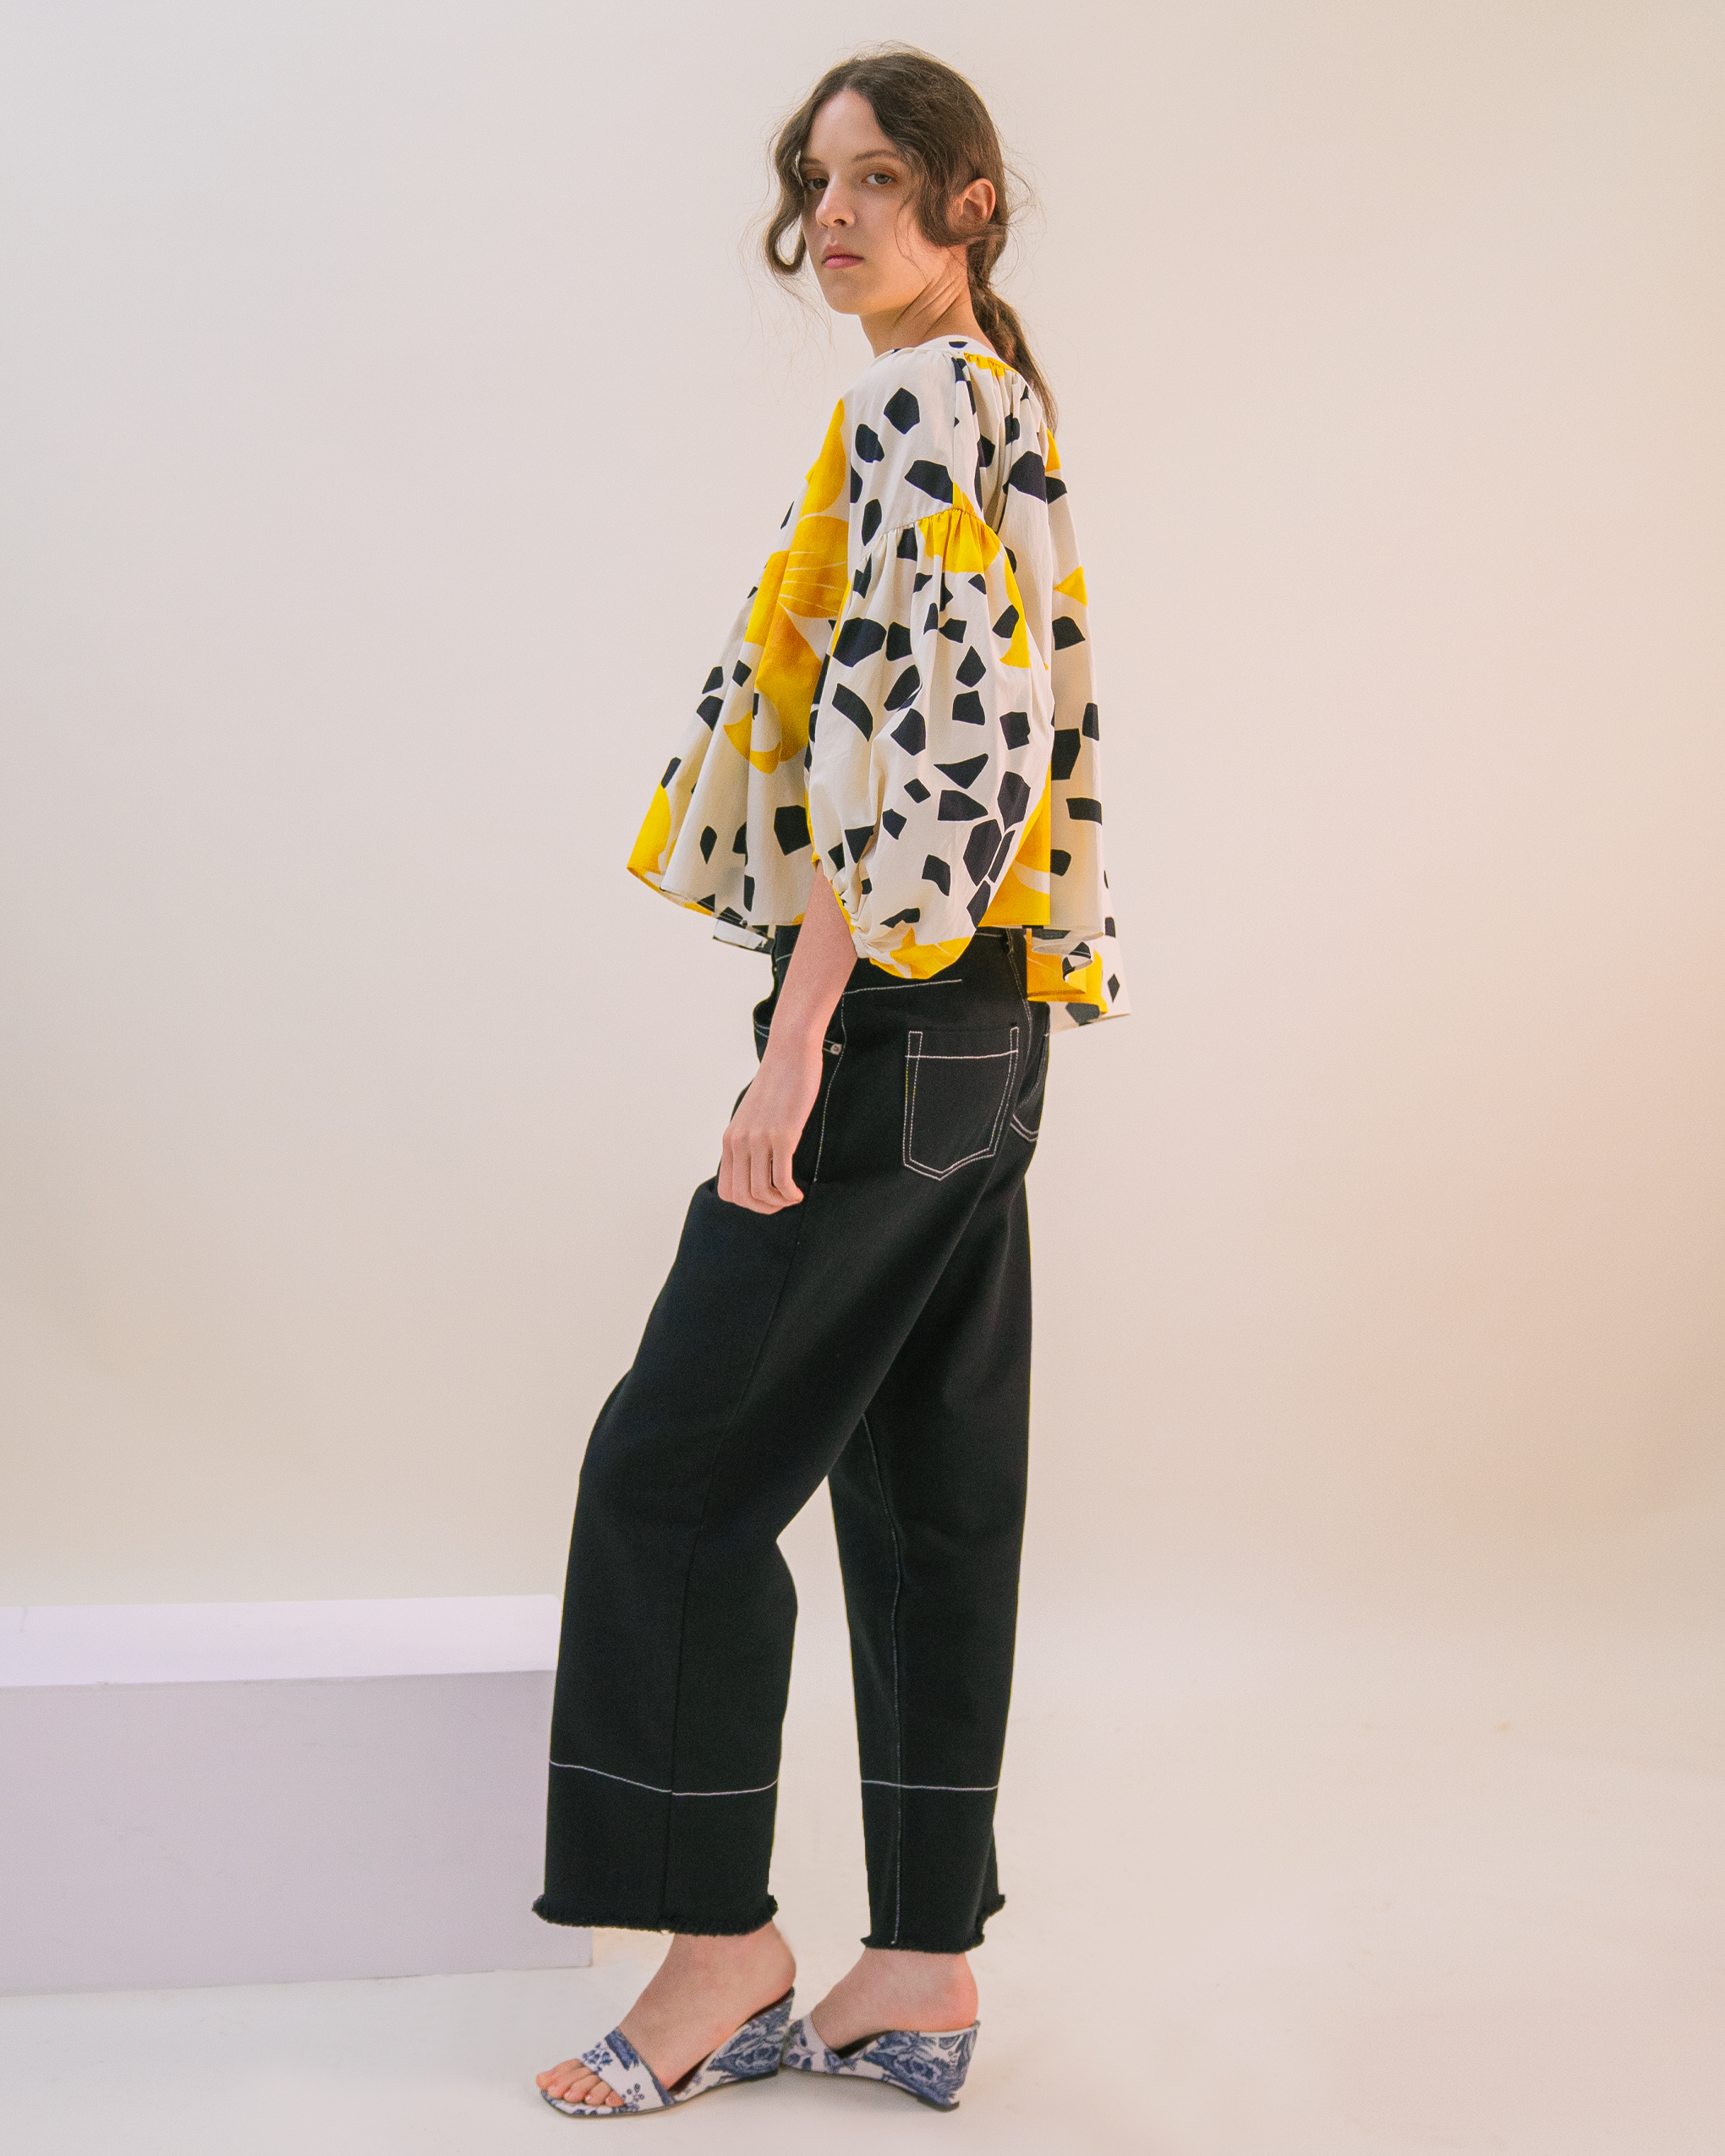 A woman is wearing yellow flower pattern volume blouse and black jeans.